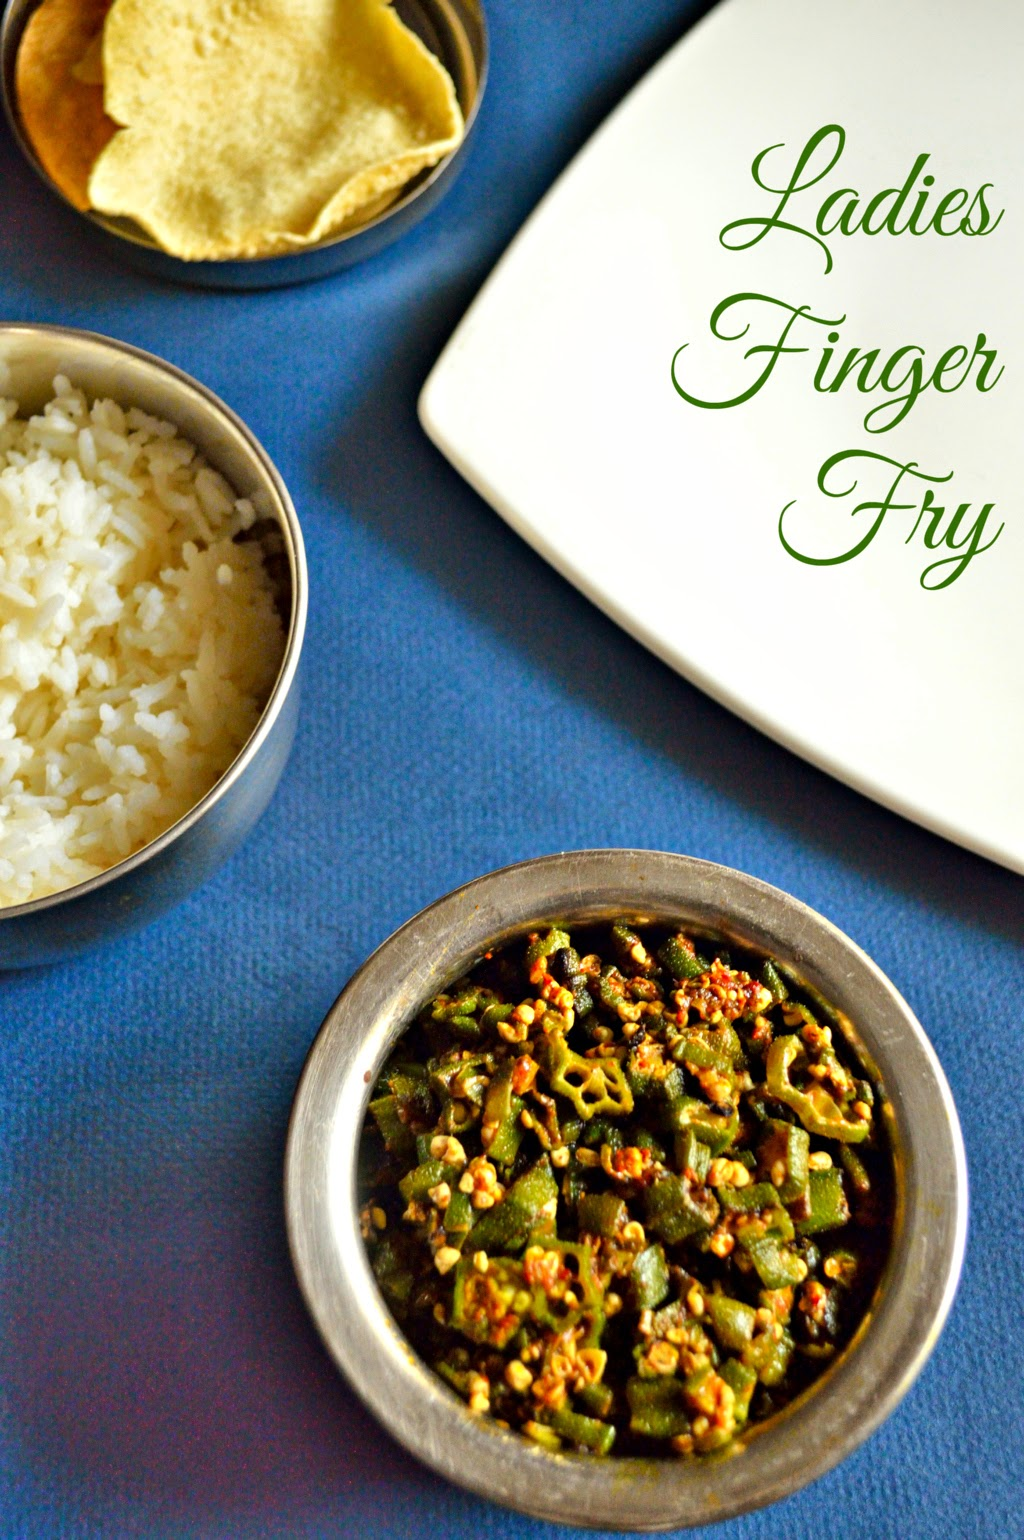 how to make ladies finger fry or poriyal, crispy golden bhindi fry recipe,okra recipes